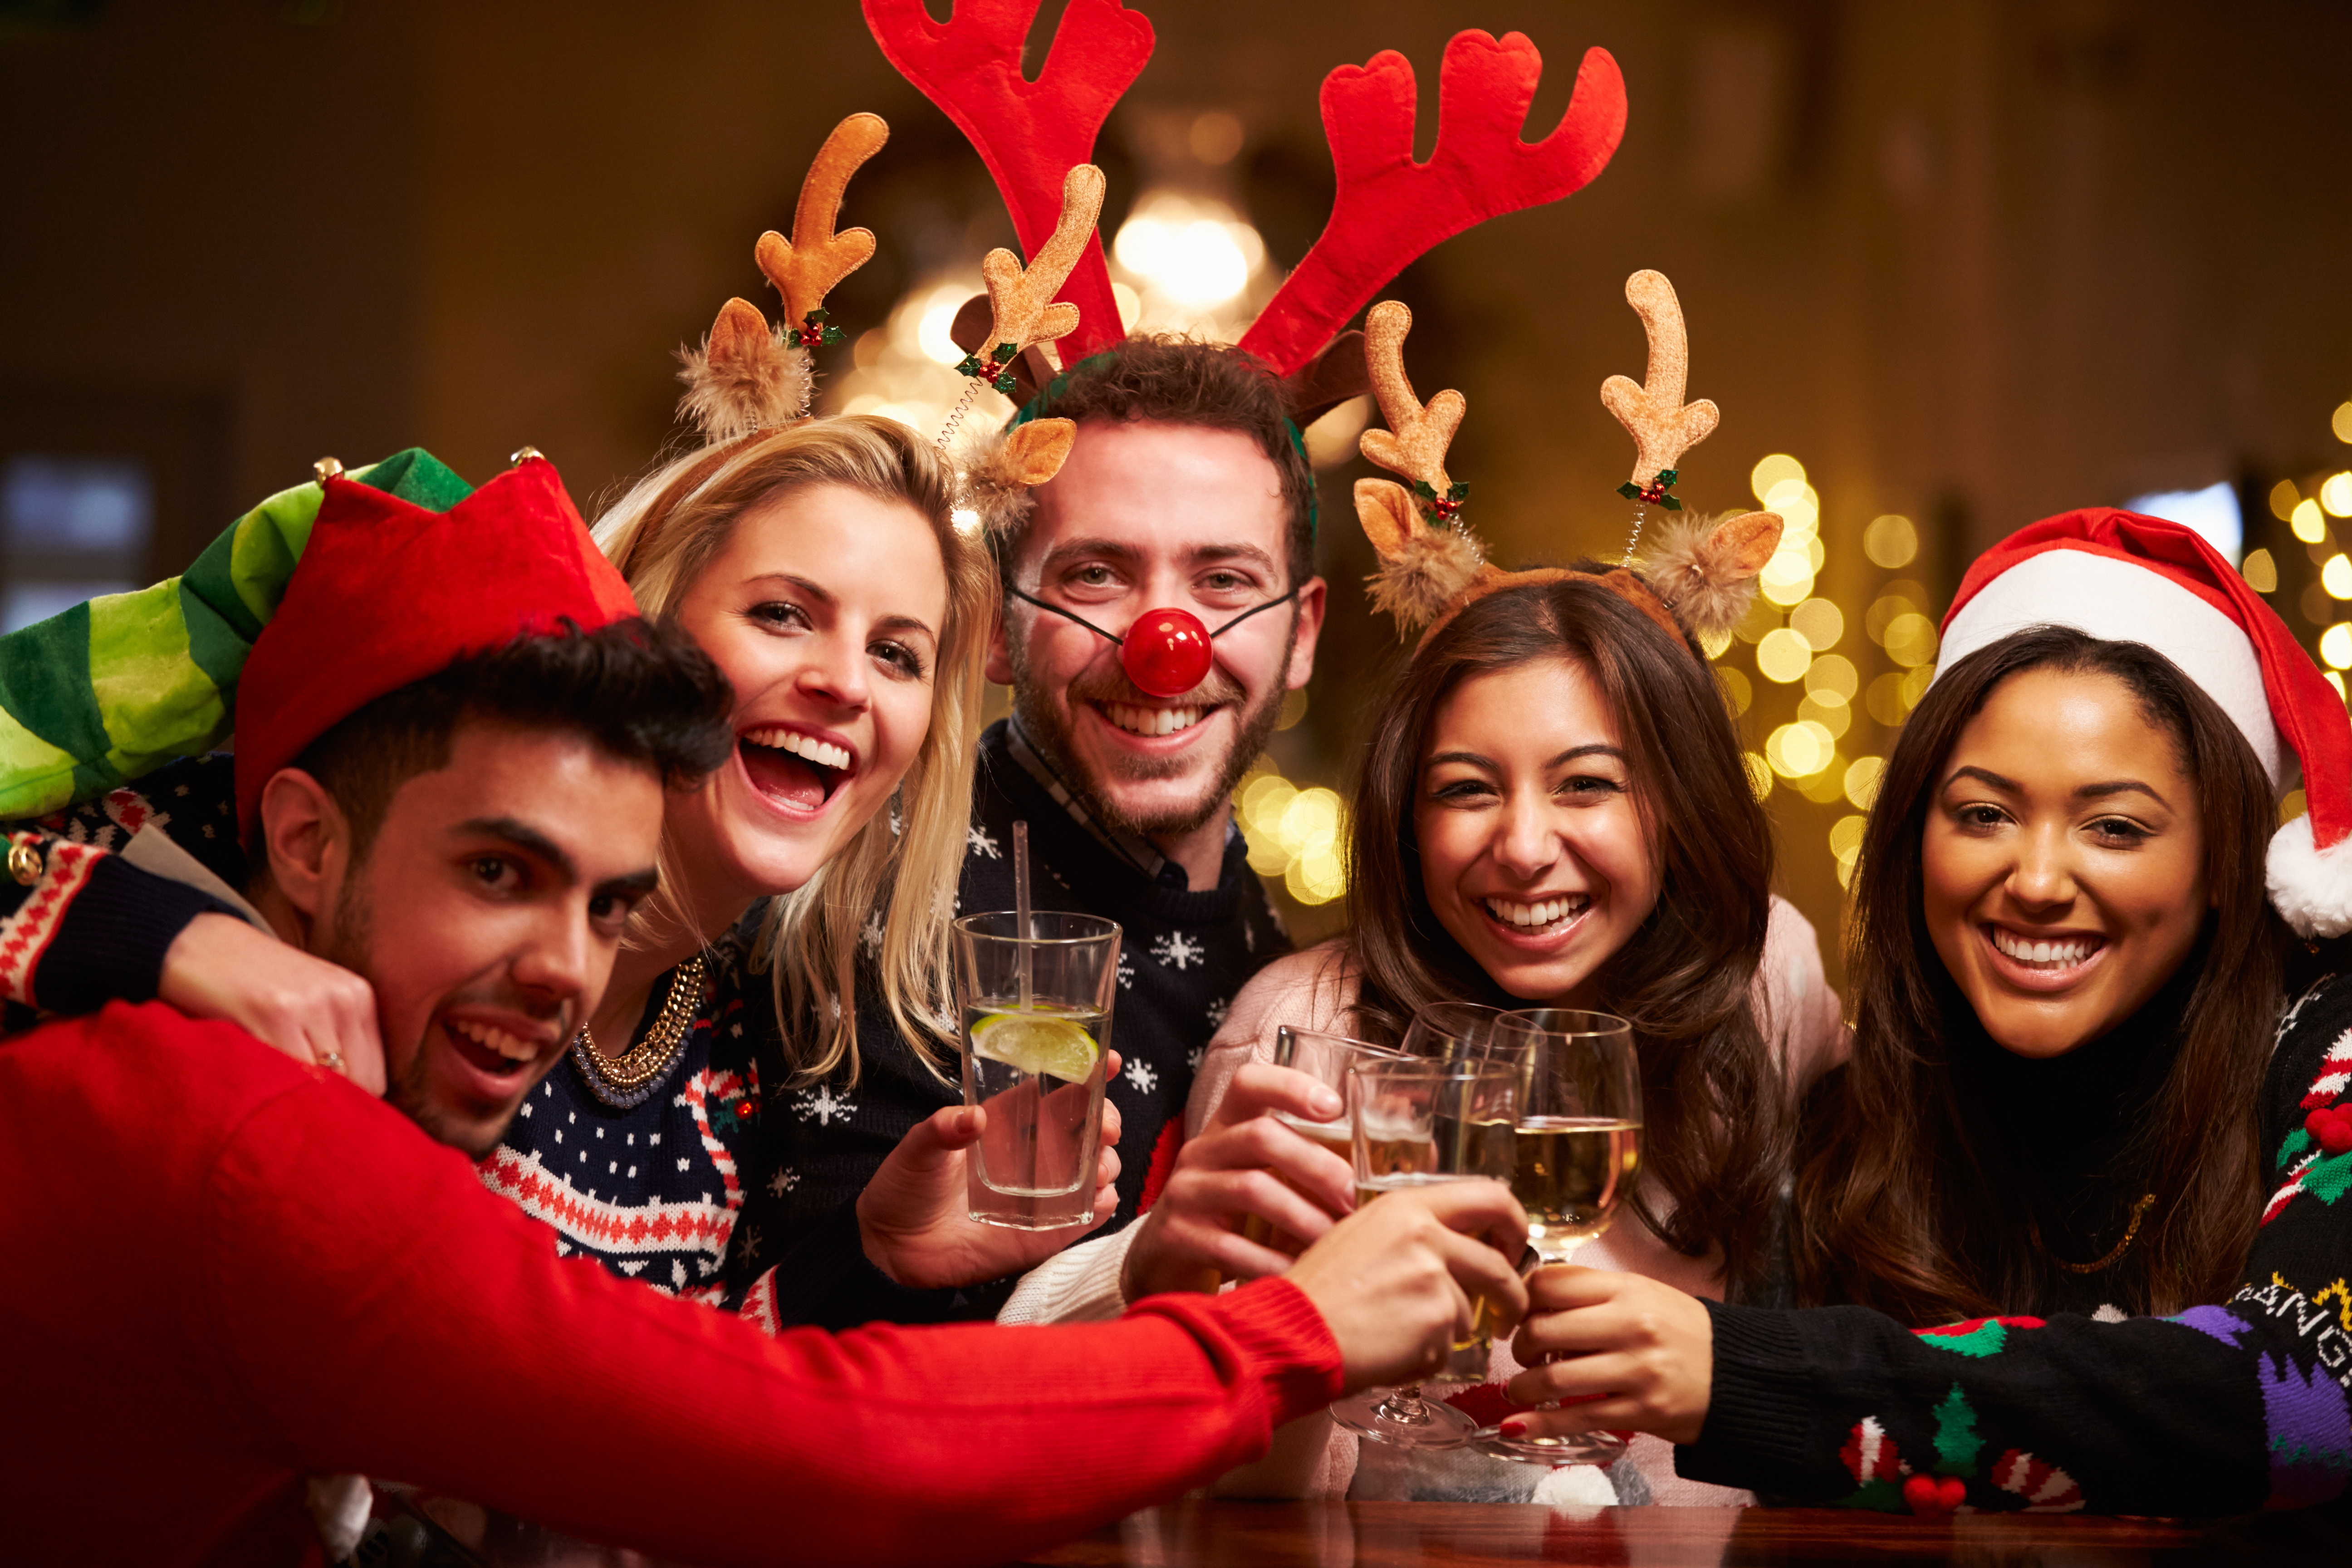 essay on christmas party Whether you're planning an evening with the family, or a rambunctious party with your friends, your сhristmas get-together will need a theme.